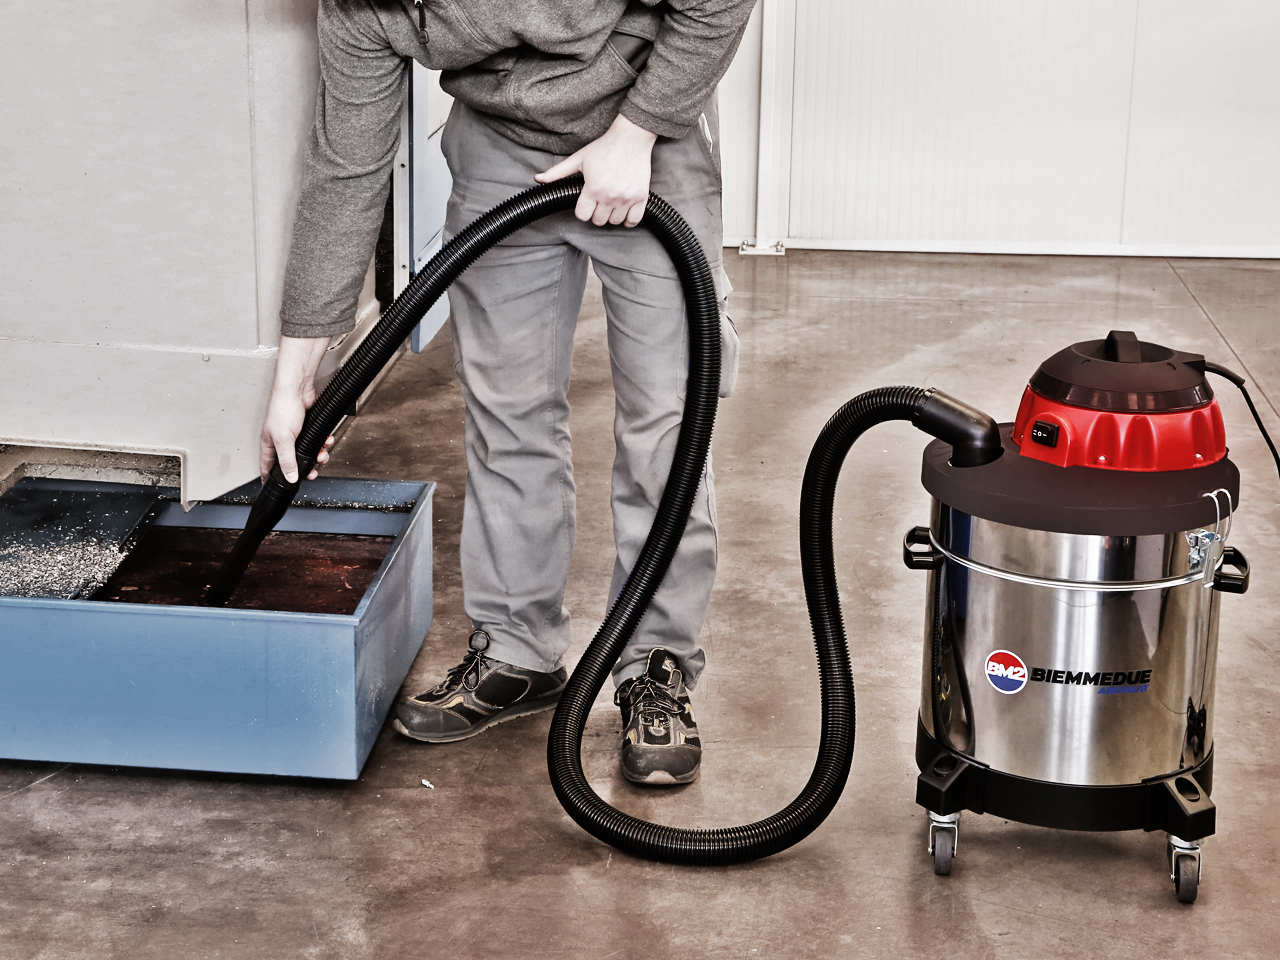 ASPIRALIQUIDI_PROFESSIONALE_PER_SEPARAZIONE_E_RECUPERO_DI_OLIO_EMULSIONATO_E_TRUCIOLI_ASPIRATRUCIOLI_ASPIRA_OLIO_PROFESSIONAL_VACUUM_CLEANER_FOR_PICK_UP_AND_SEPARATION_OF_EMULSIFIED_OIL_AND_CHIPPINGS.jpg